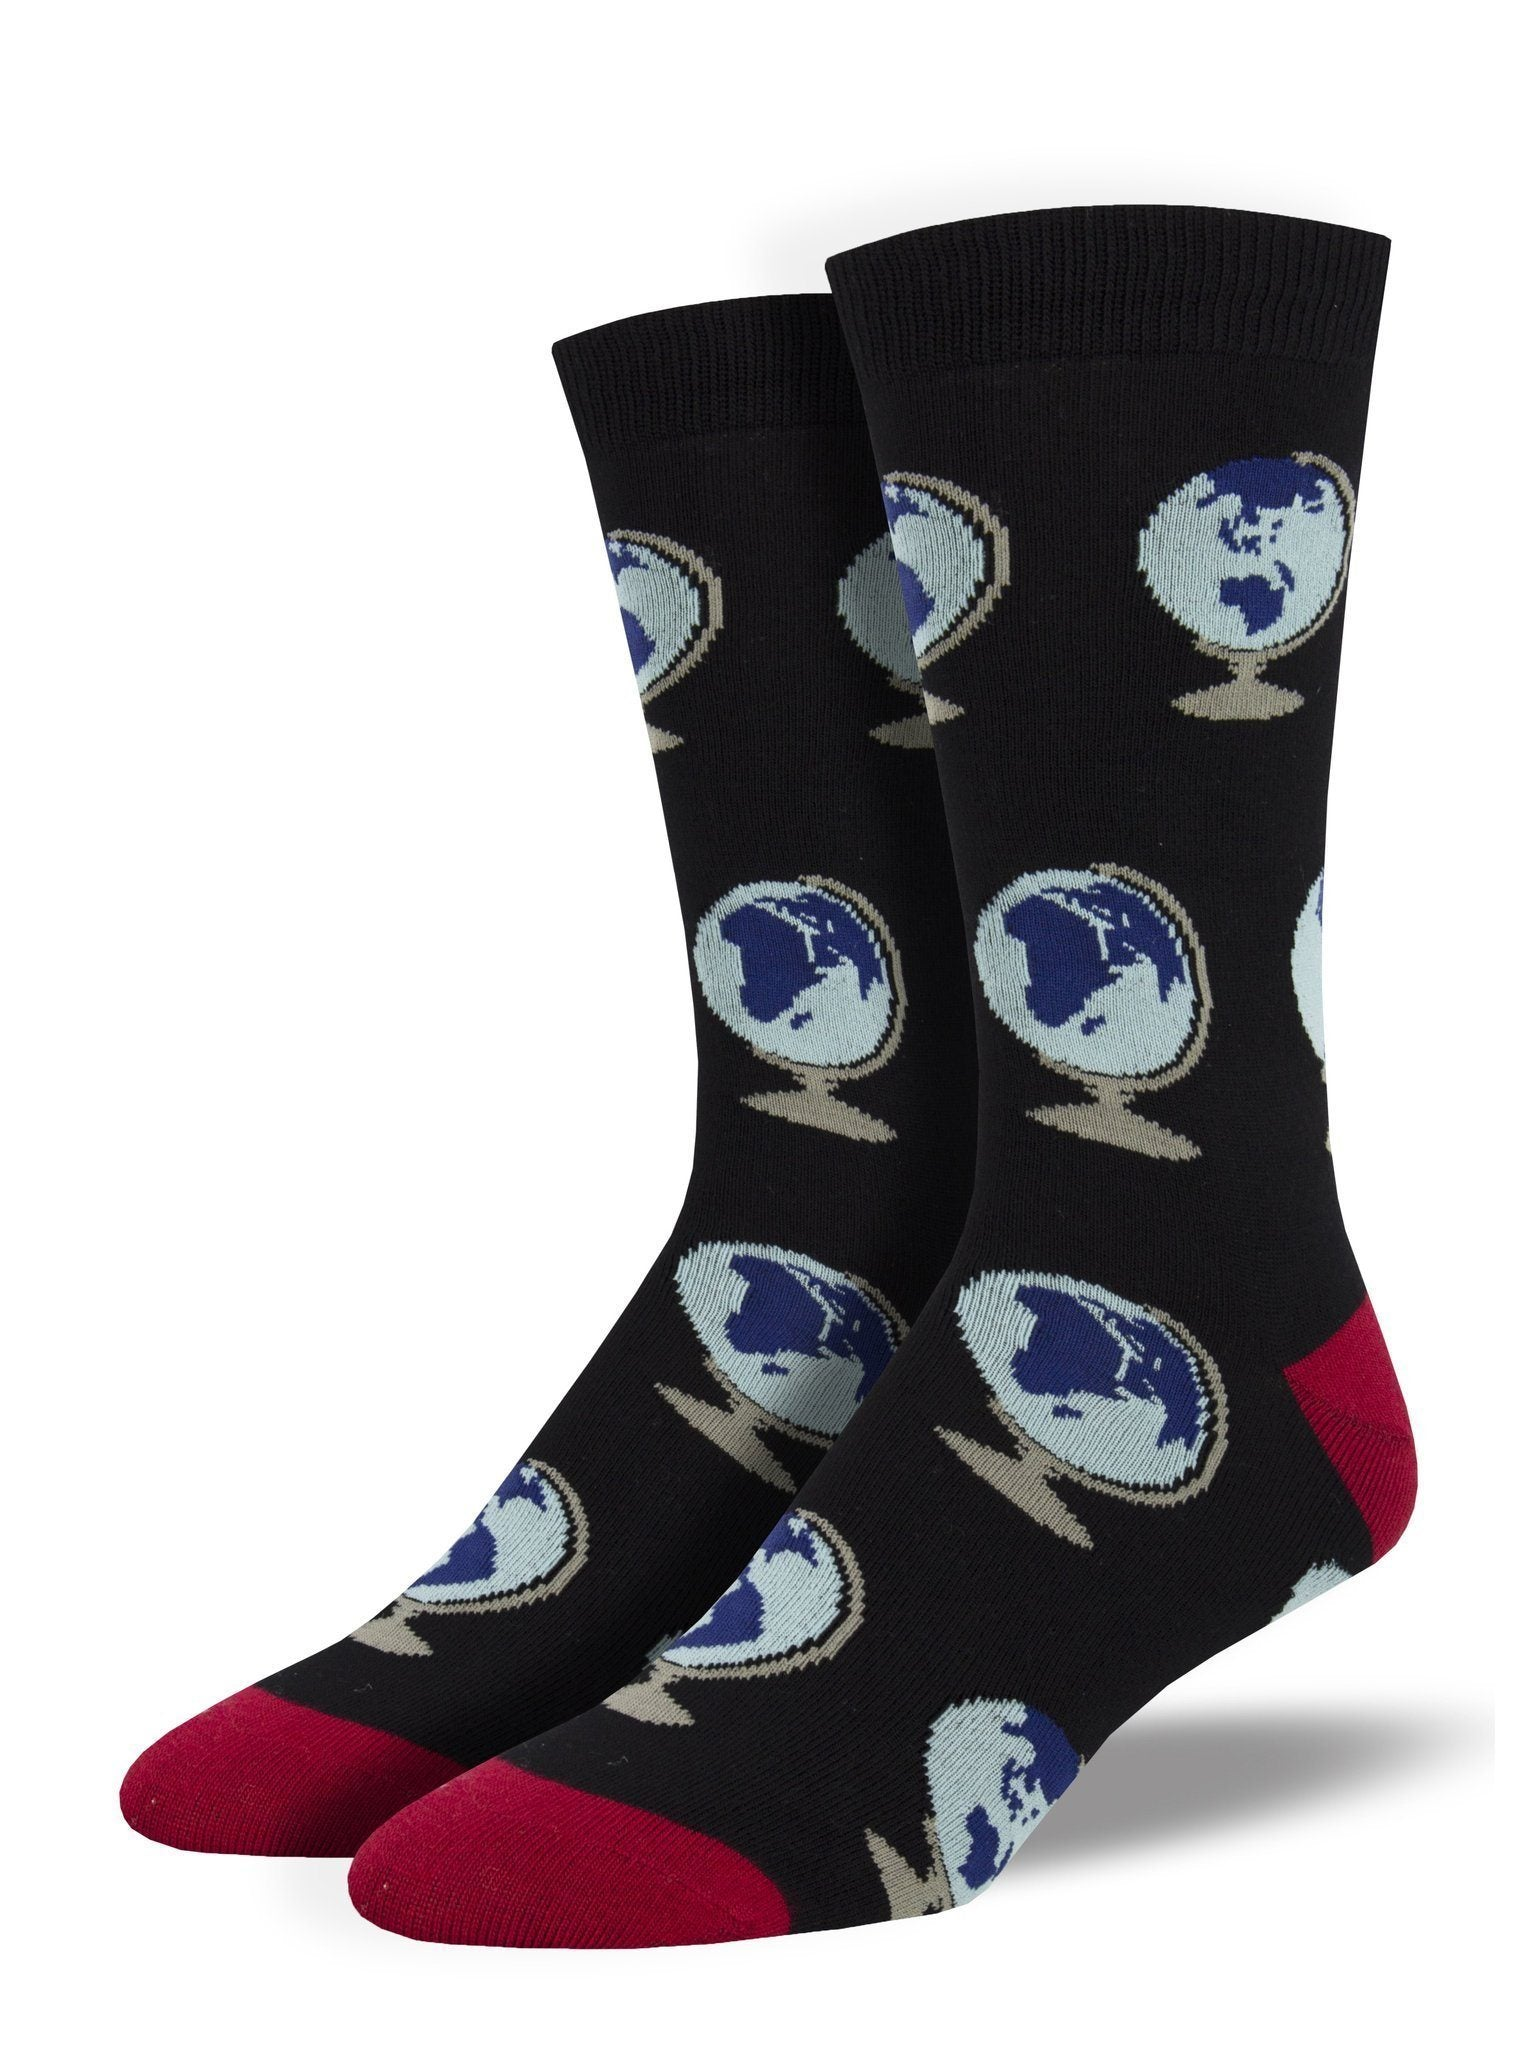 Socksmith - Bamboo Around the World Crew Socks | Men's - Knock Your Socks Off